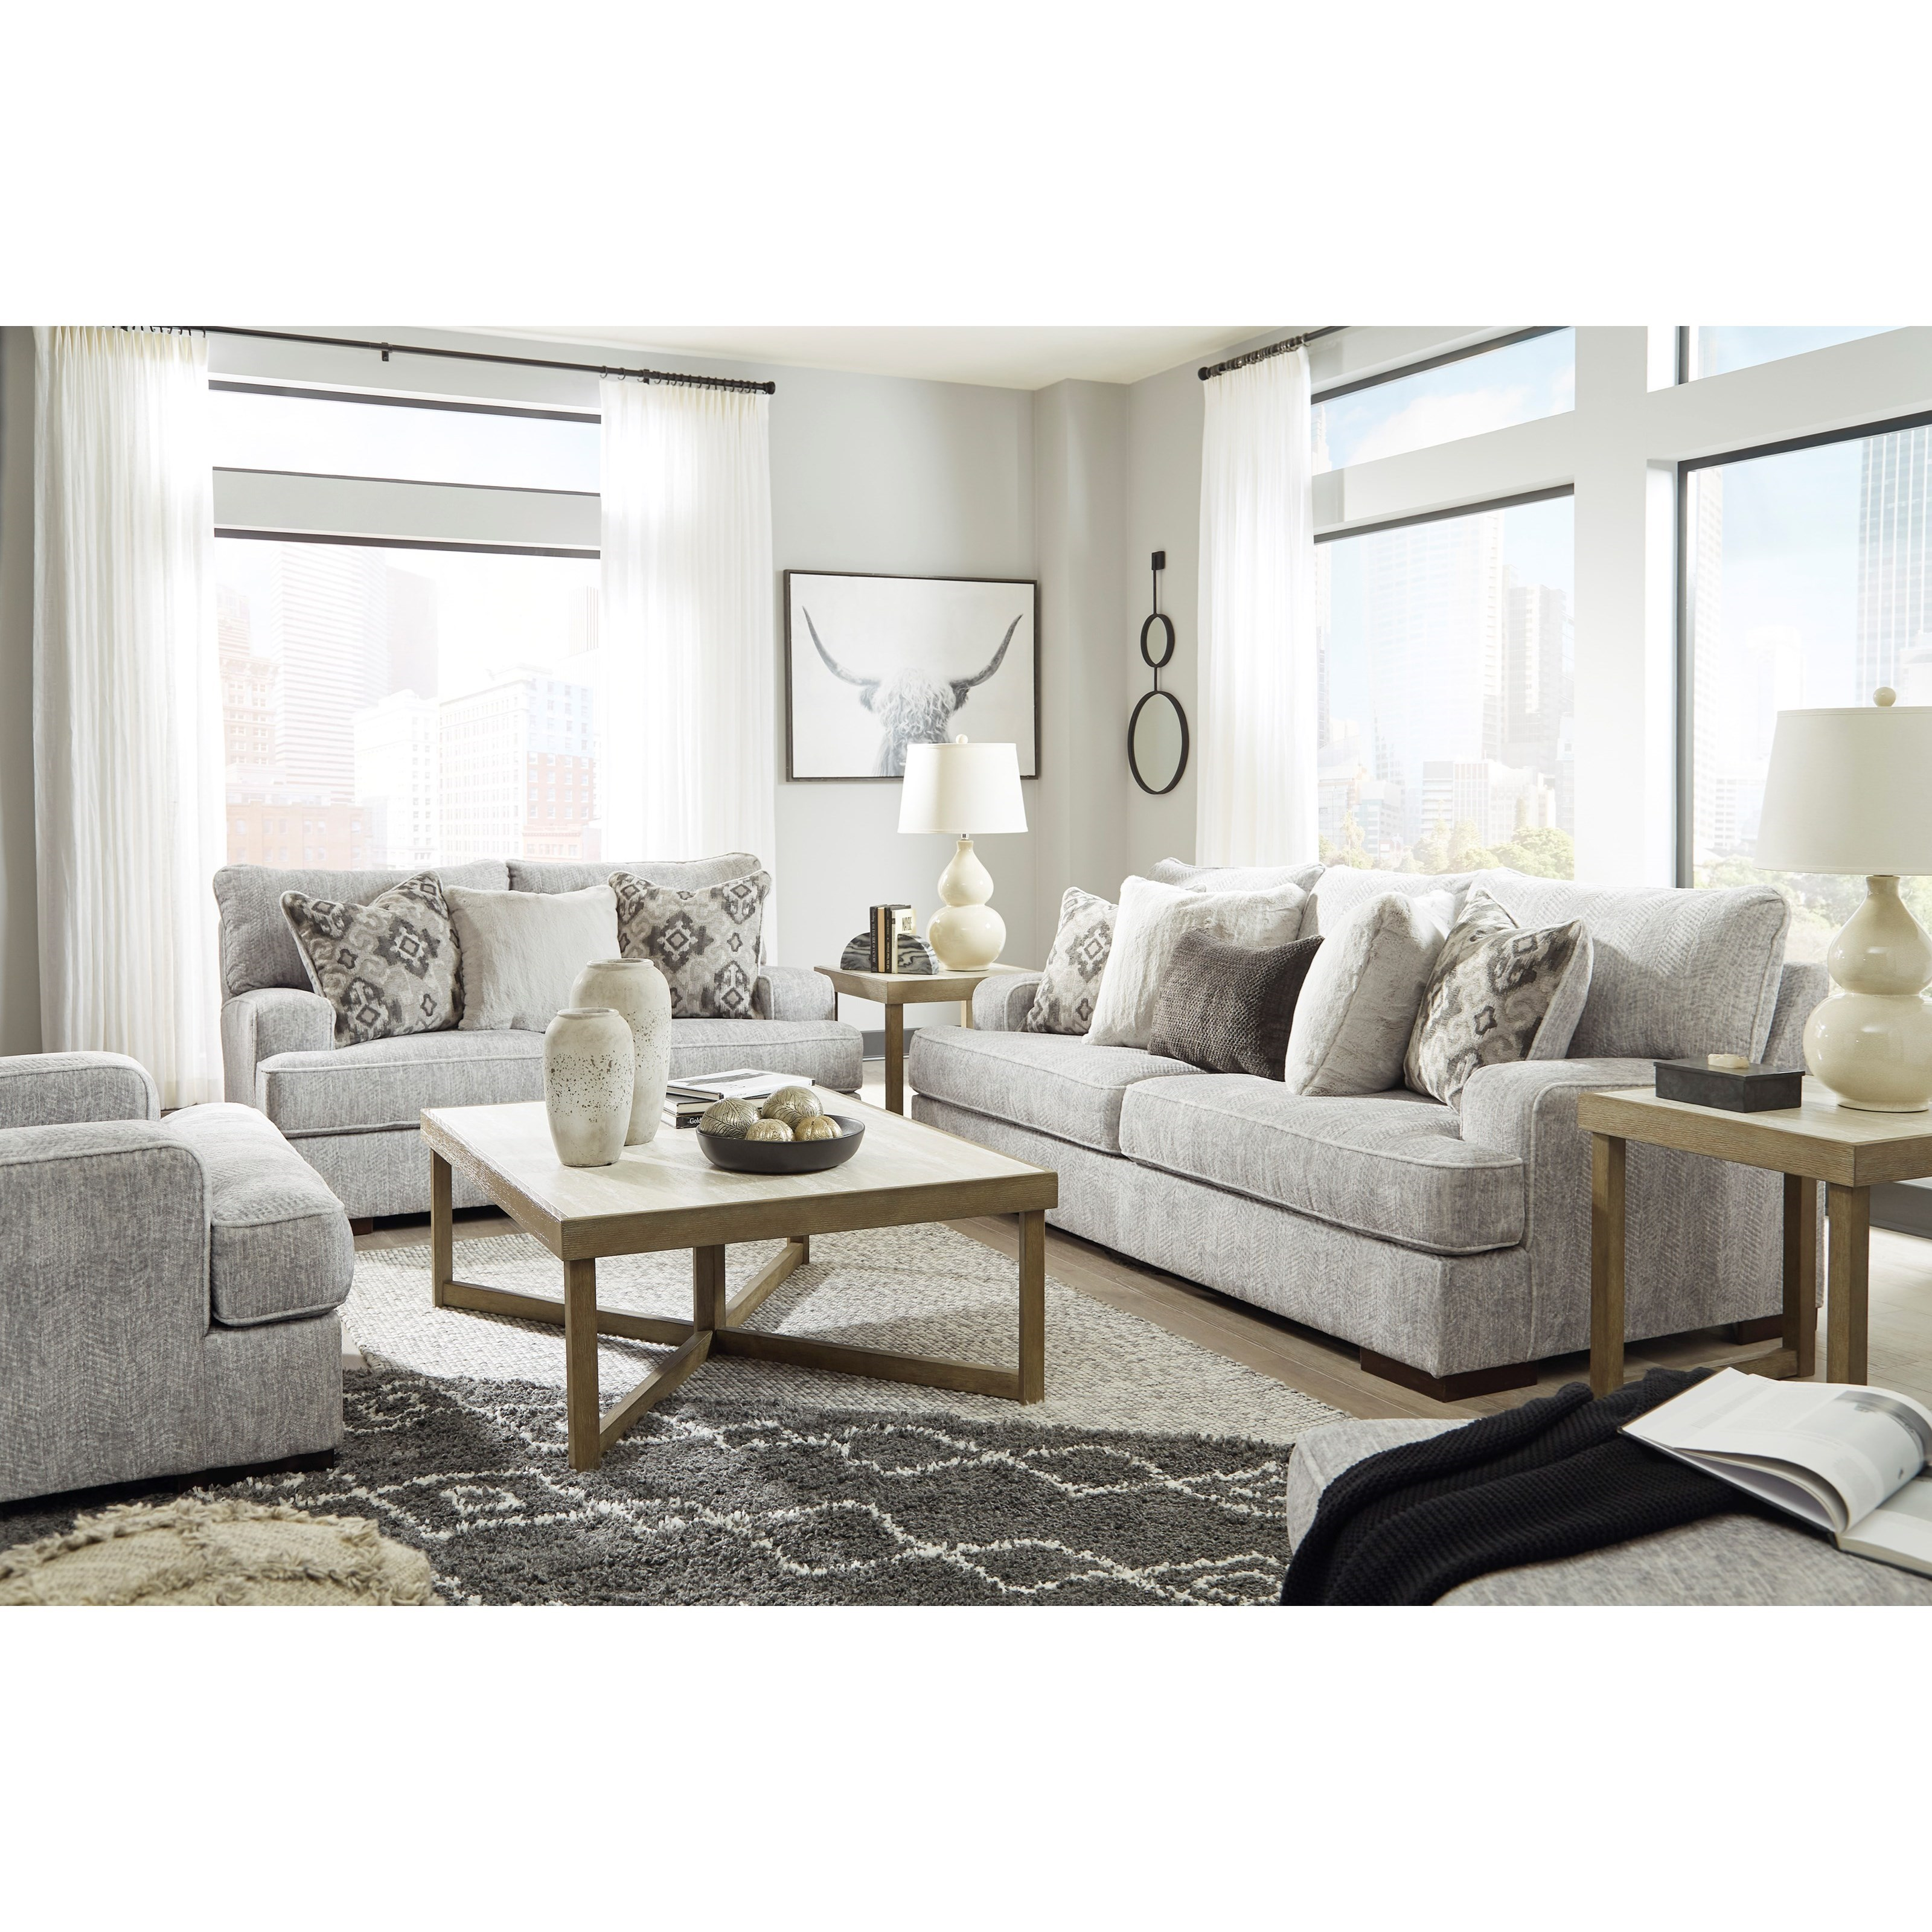 Mercado 3pc reclining living room group by Benchcraft at Value City Furniture